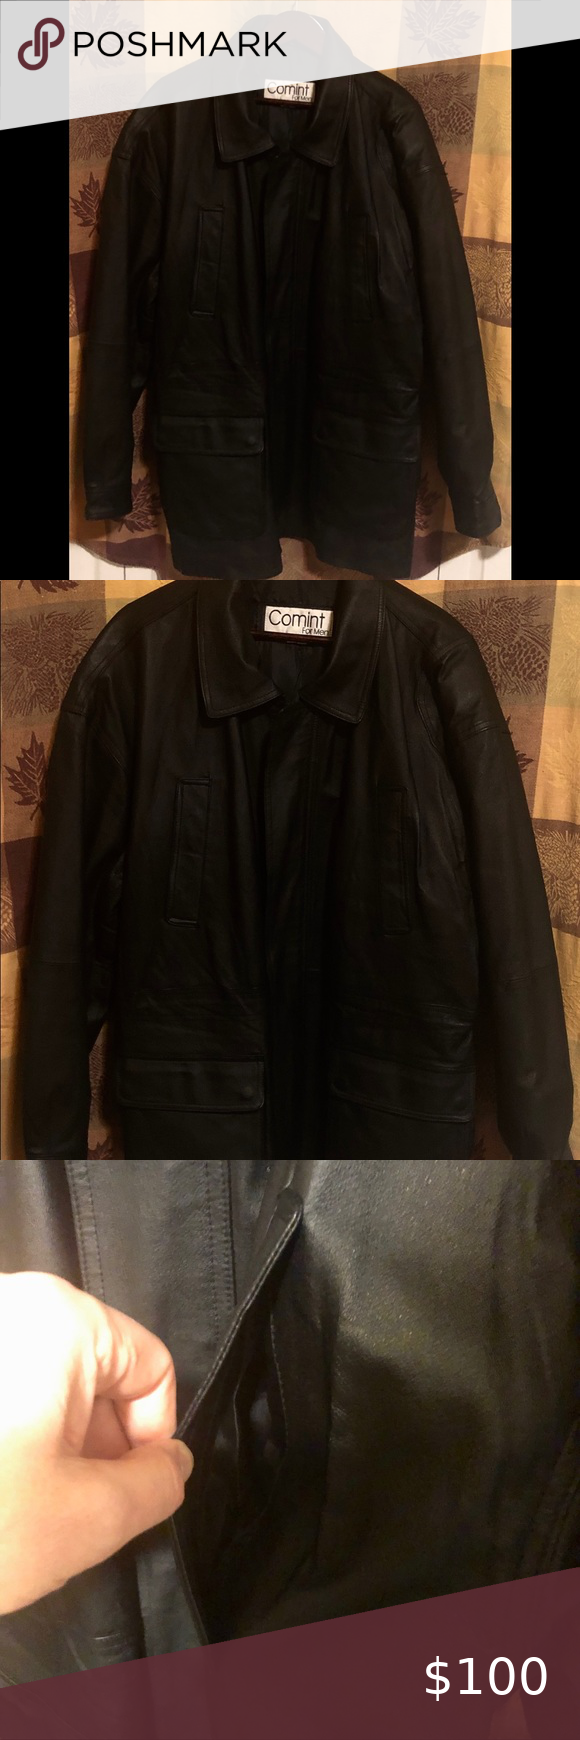 Comint Leather Coat 34 Inches Collar To Hem Clothes Design Vintage Leather Jacket Fashion [ 1740 x 580 Pixel ]